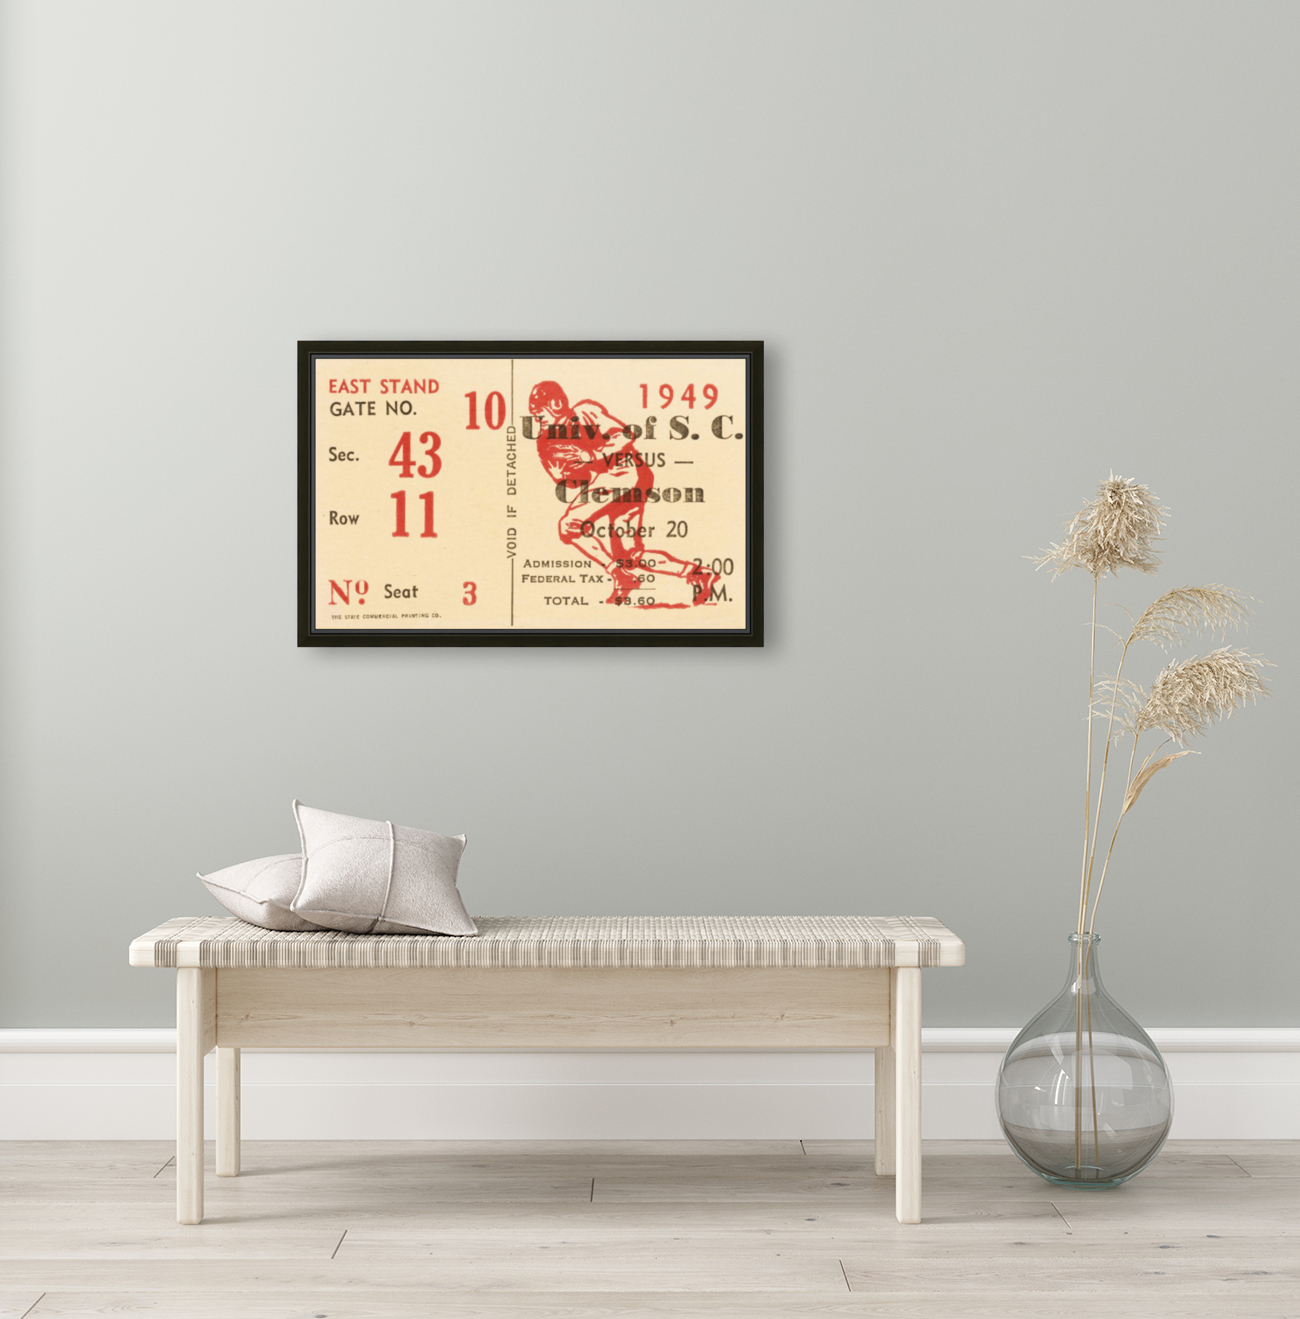 1949 south carolina gamecocks palmetto bowl ticket stub wall art metal sign wood prints with Floating Frame